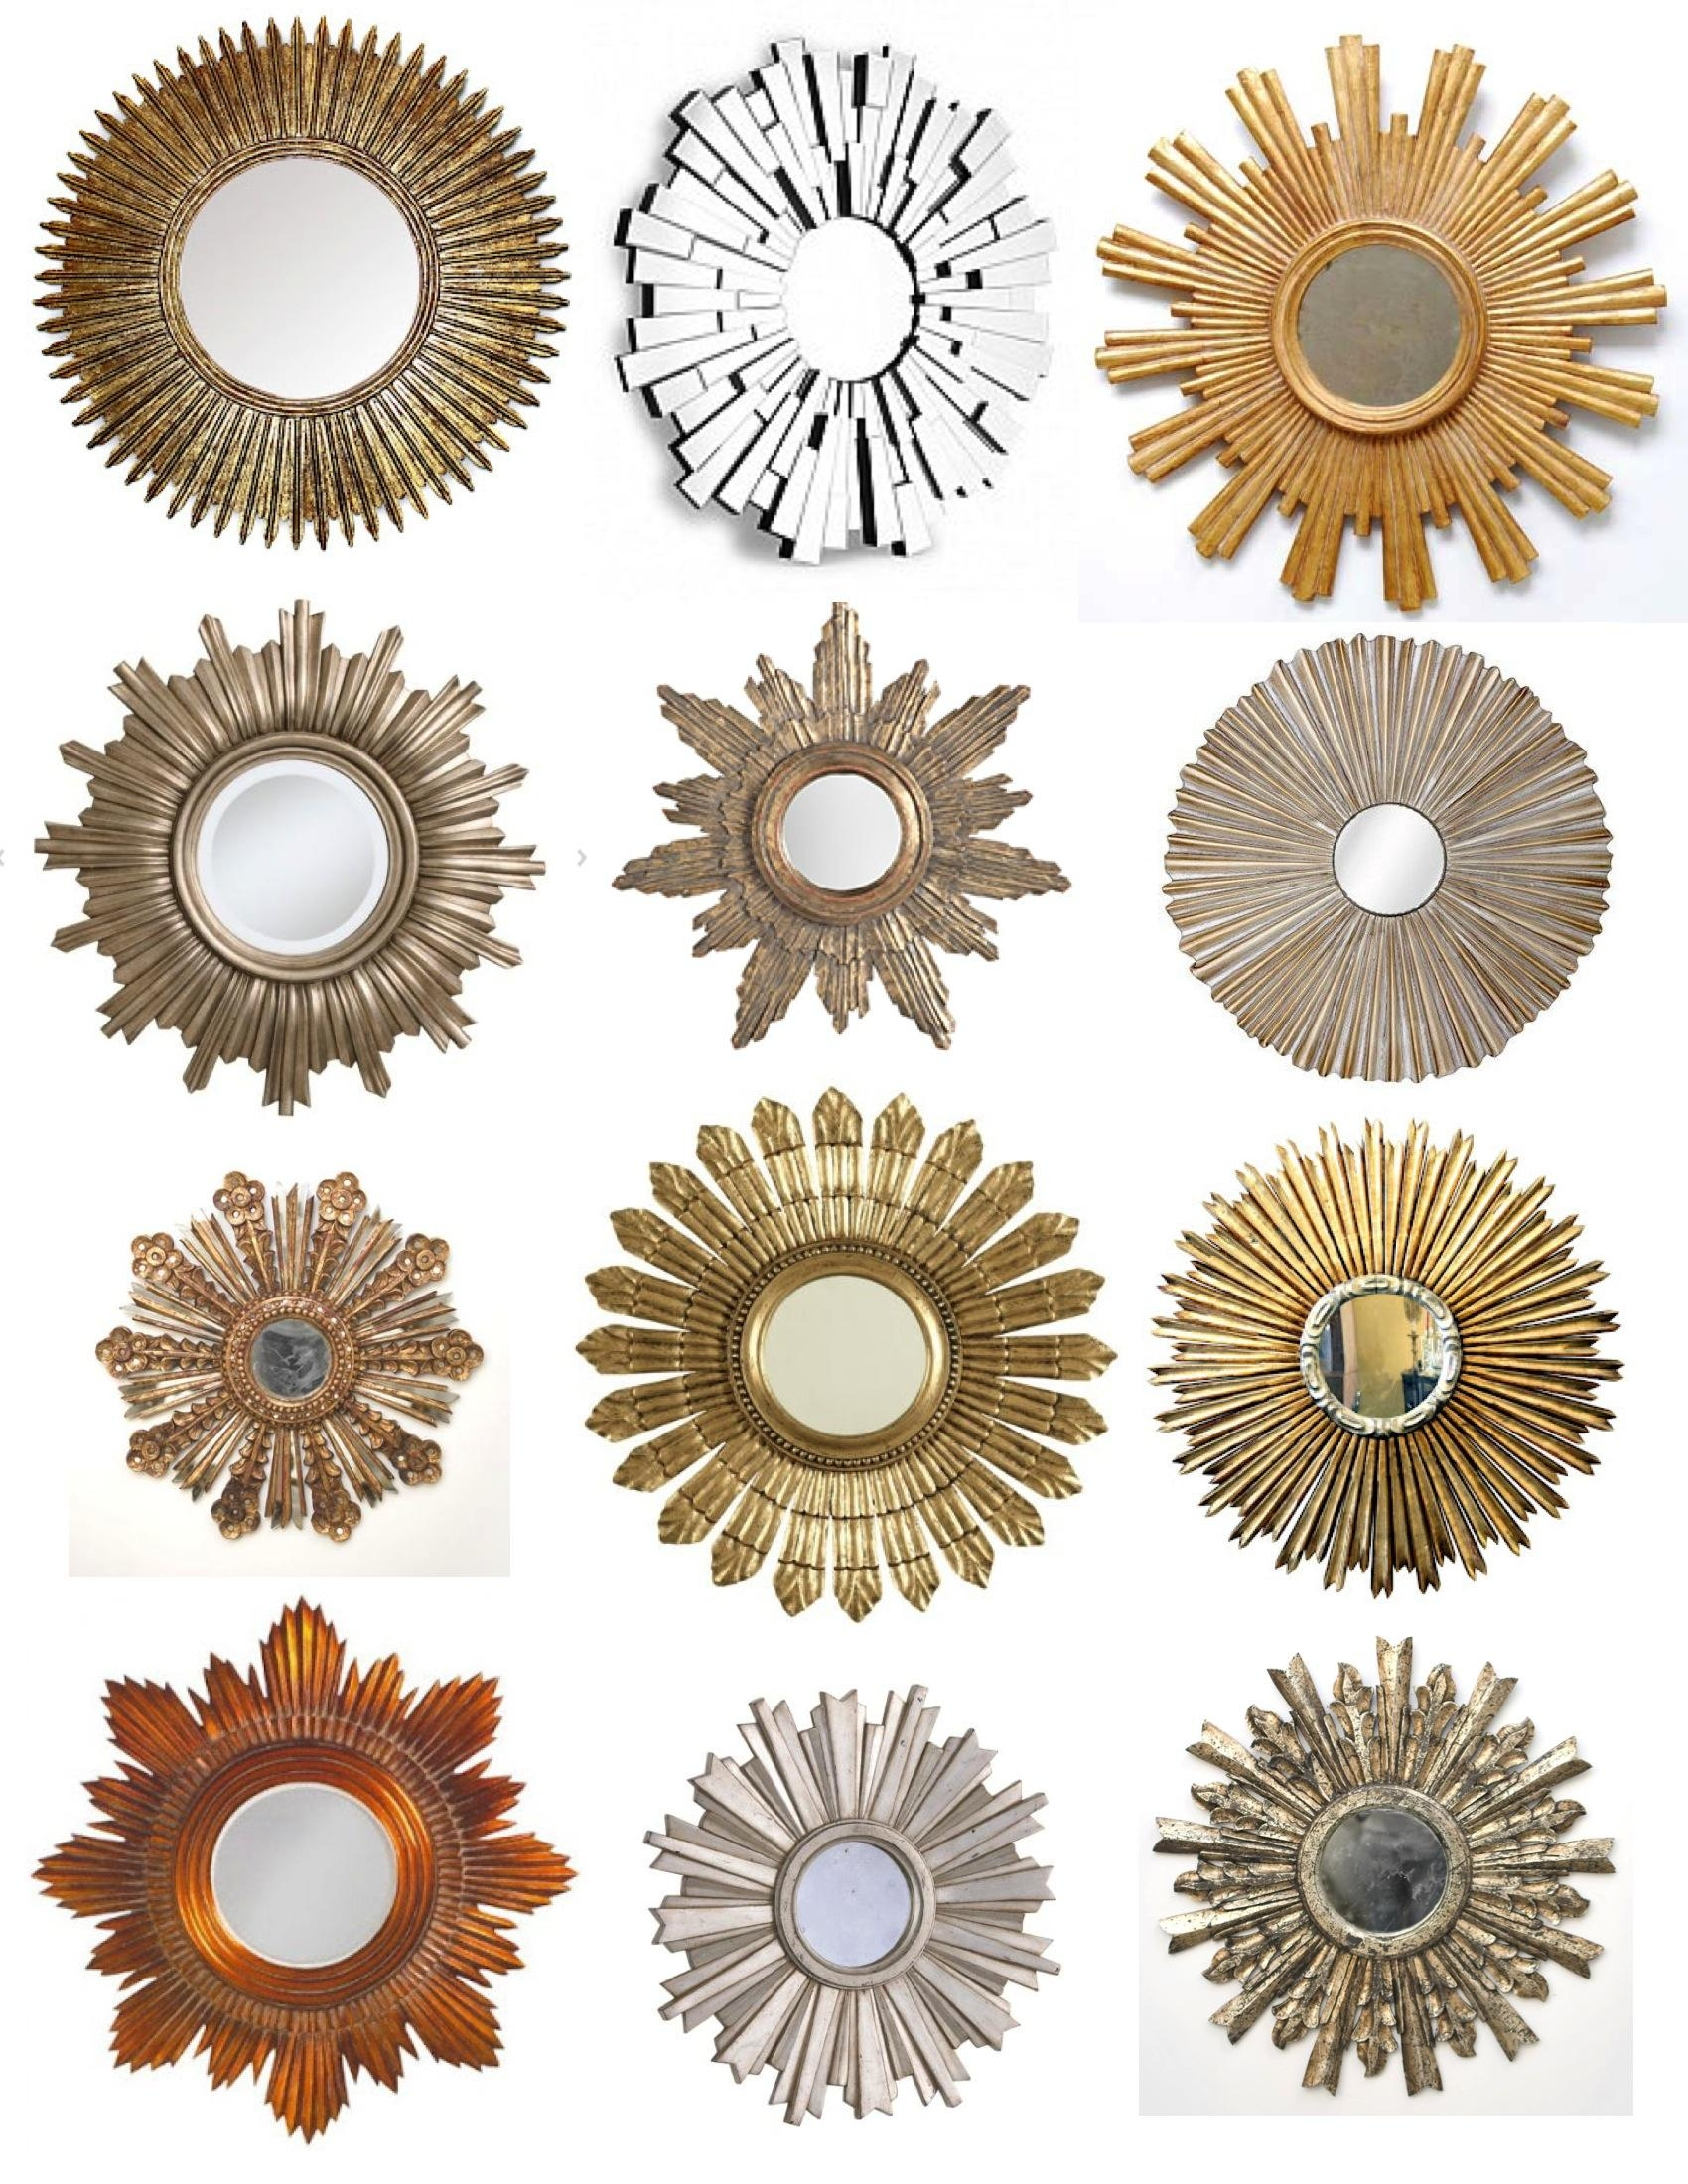 Interior & Decor: Starburst Mirror | Martha Stewart Sunburst Pertaining To Bronze Starburst Mirror (Image 9 of 21)